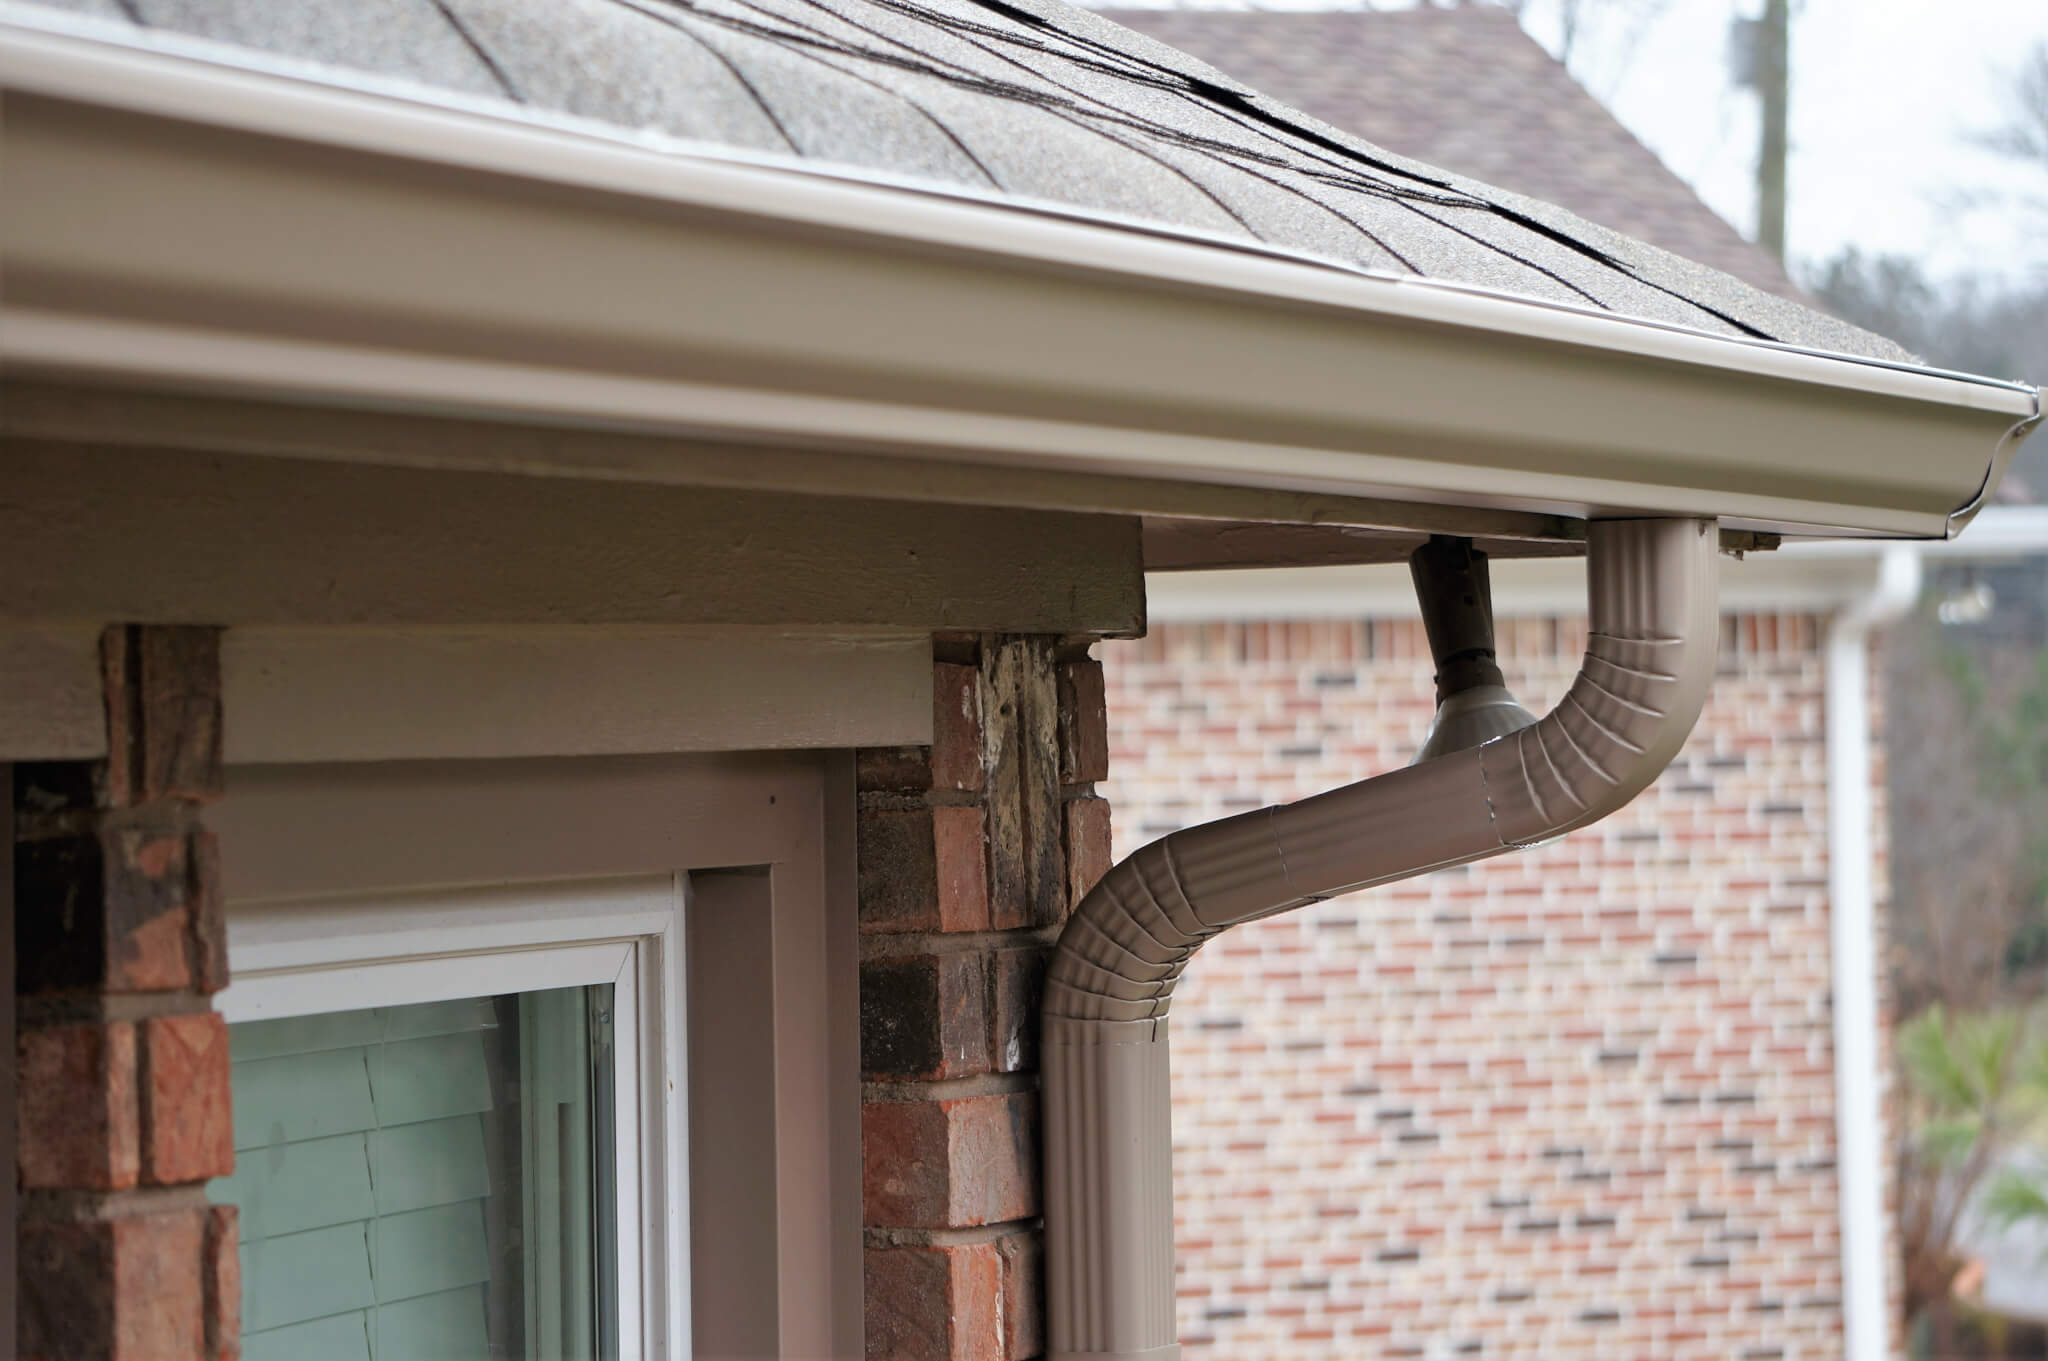 Gutter Guards Are One Of The Other Services Roofing Renovations Performs.